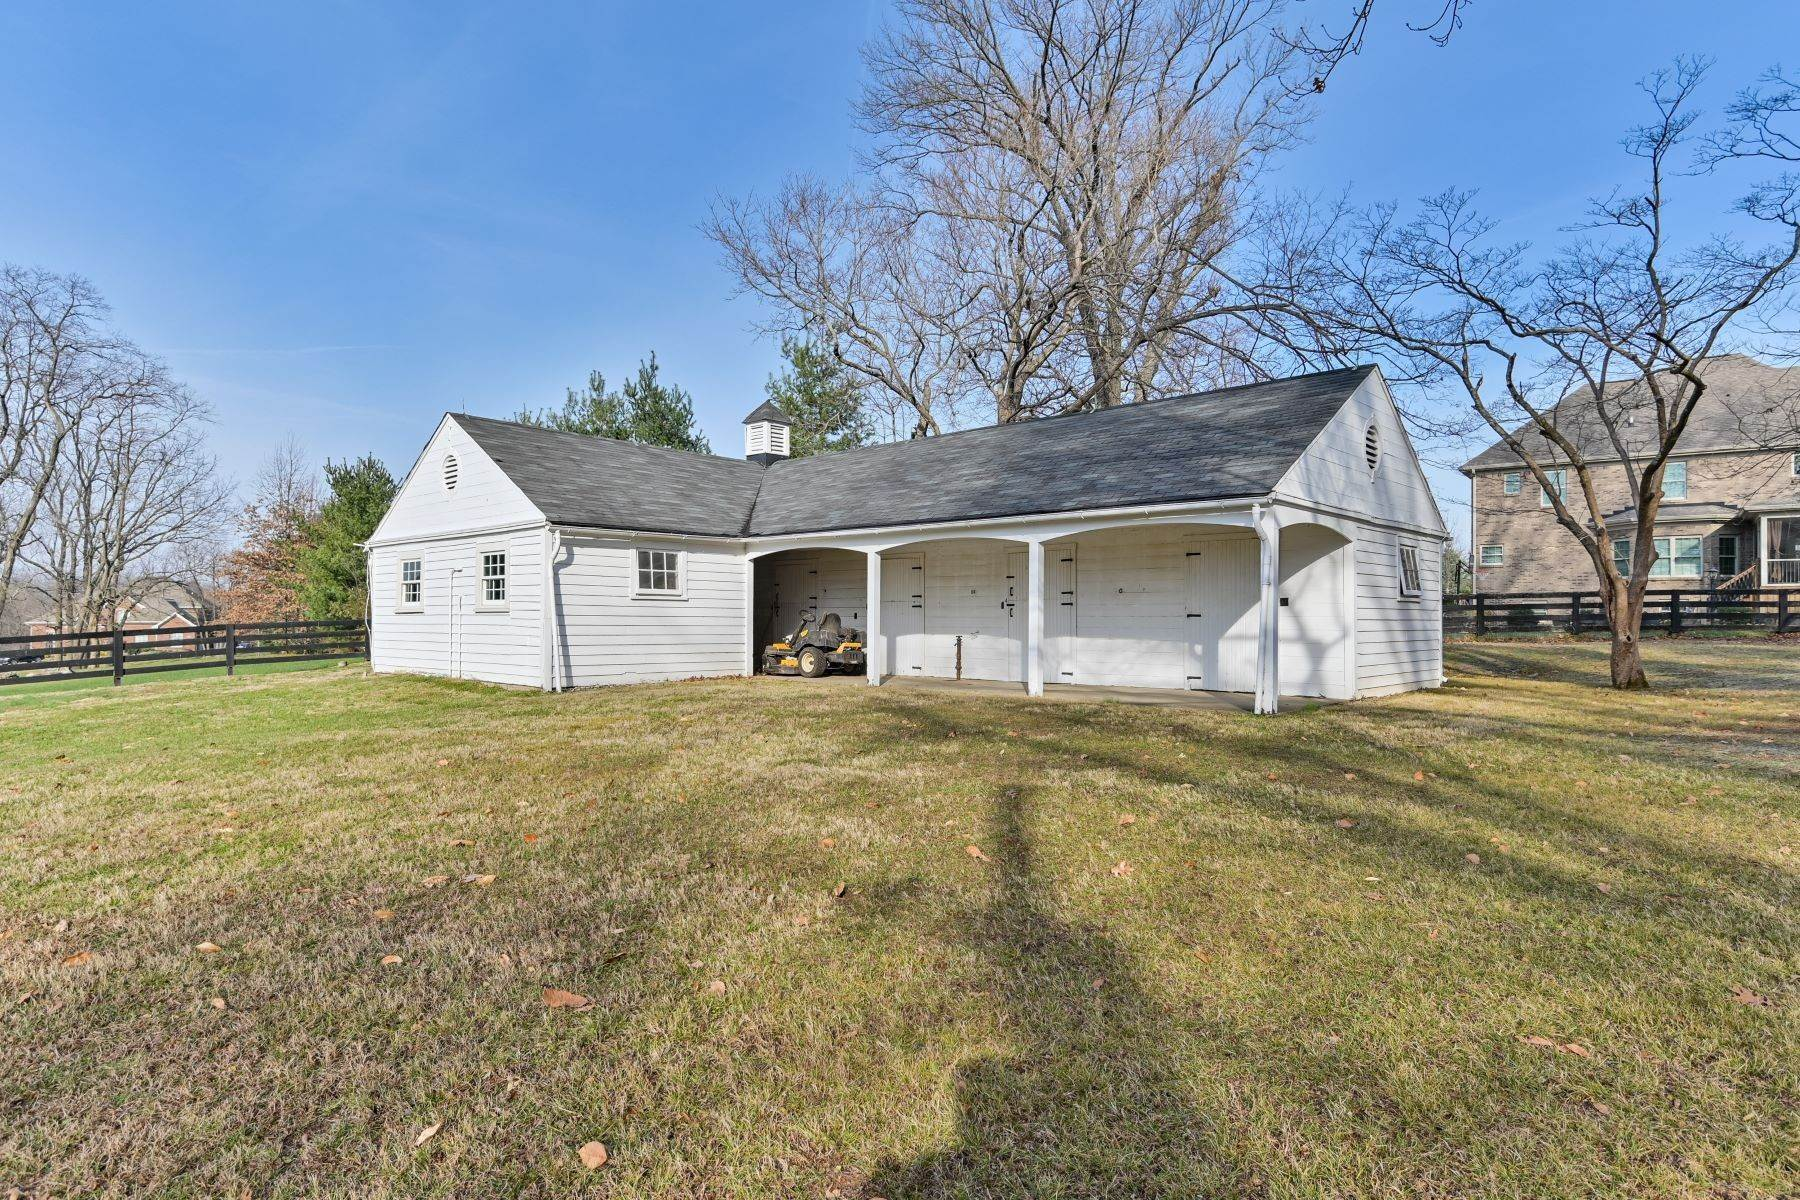 44. Single Family Homes for Sale at 8617 Wolf Pen Branch Road Prospect, Kentucky 40059 United States